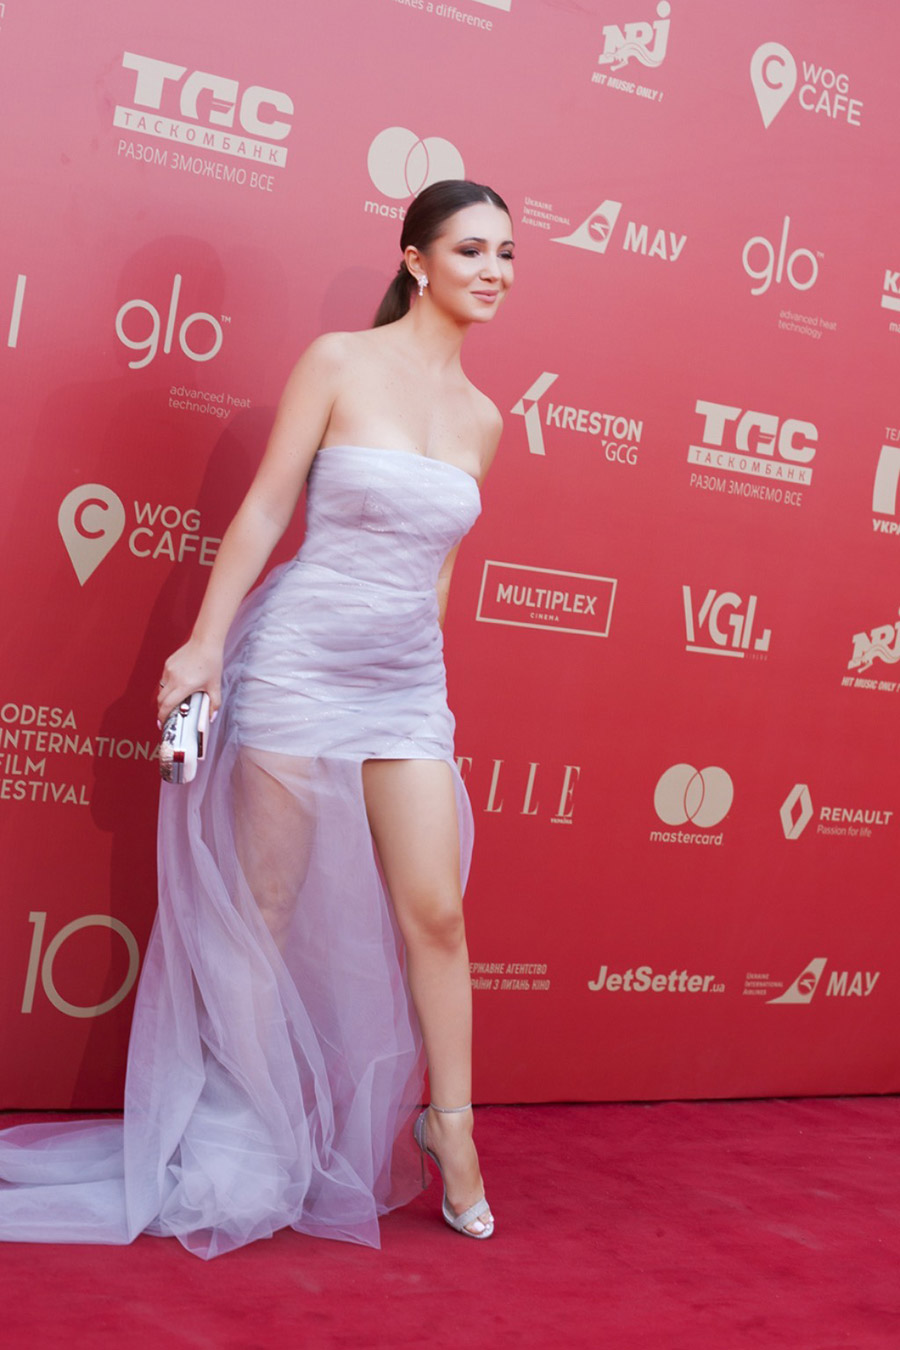 Elvira Gavrilova, walking the red carpet of the Odessa International Film Festival